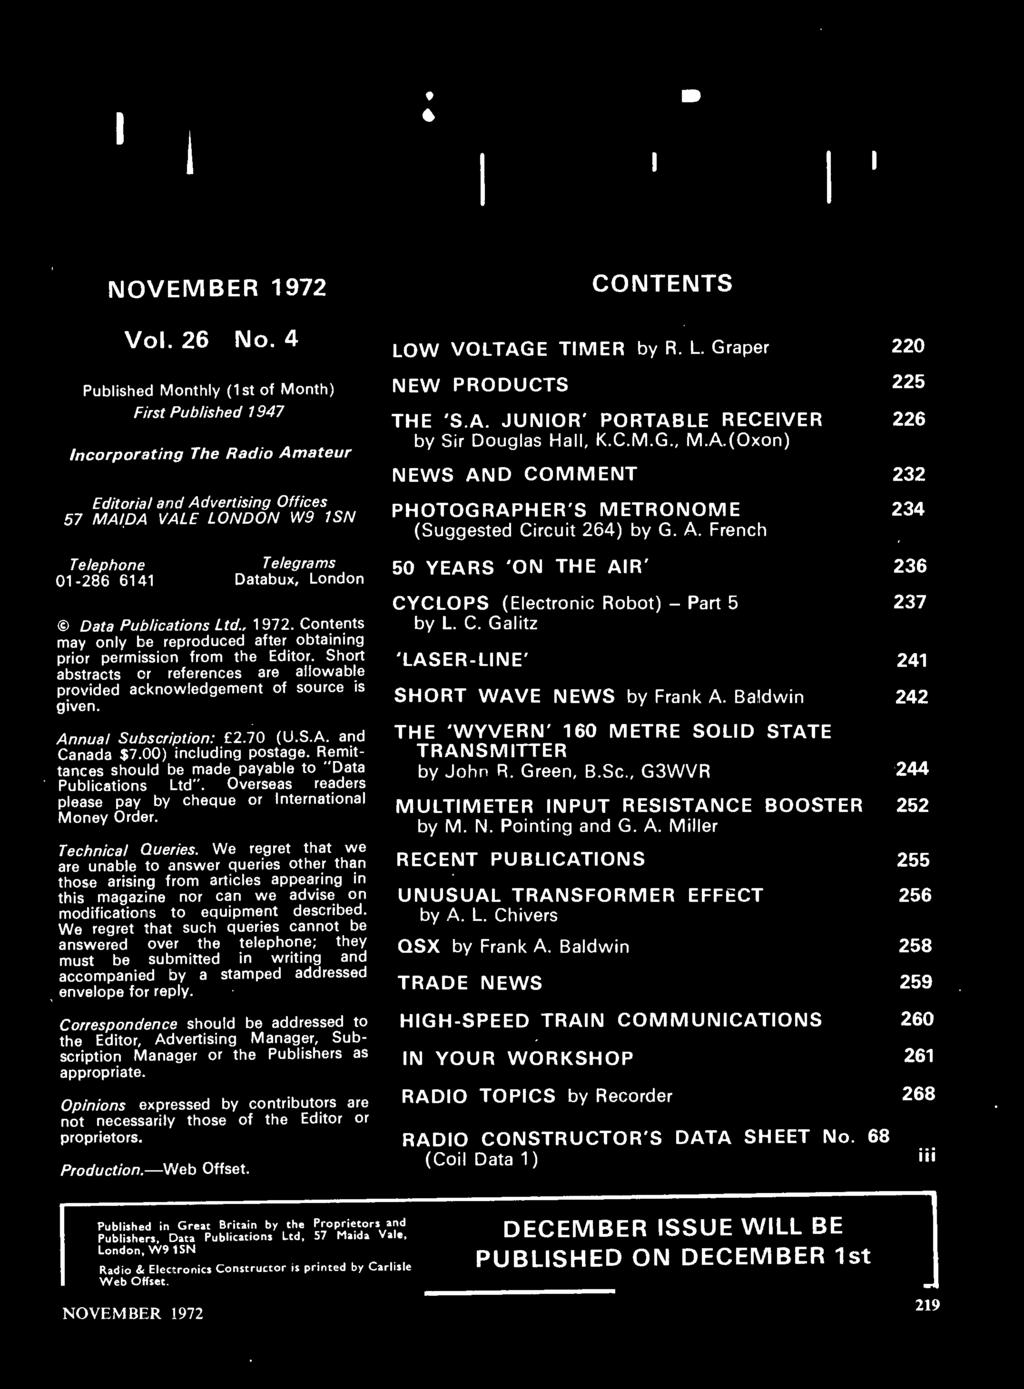 Data Publications Ltd., 1972. Contents may only be reproduced after obtaining prior permission from the Editor. Short abstracts or references are allowable provided acknowledgement of source is given.